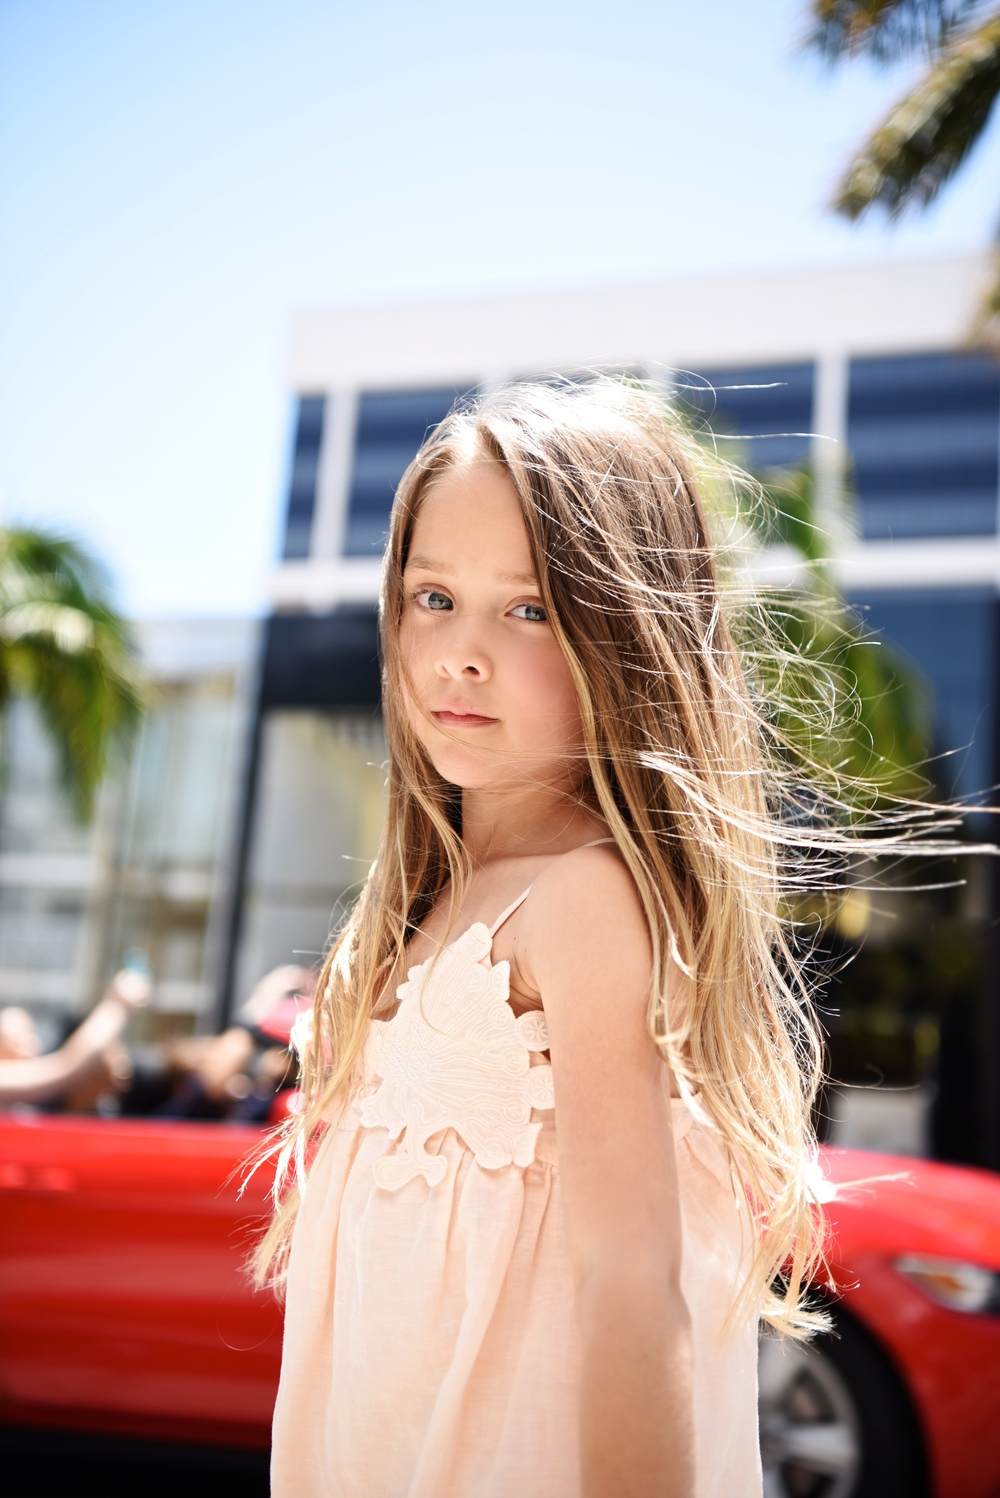 Enfant Street Style by Gina Kim Photography Chloe girls